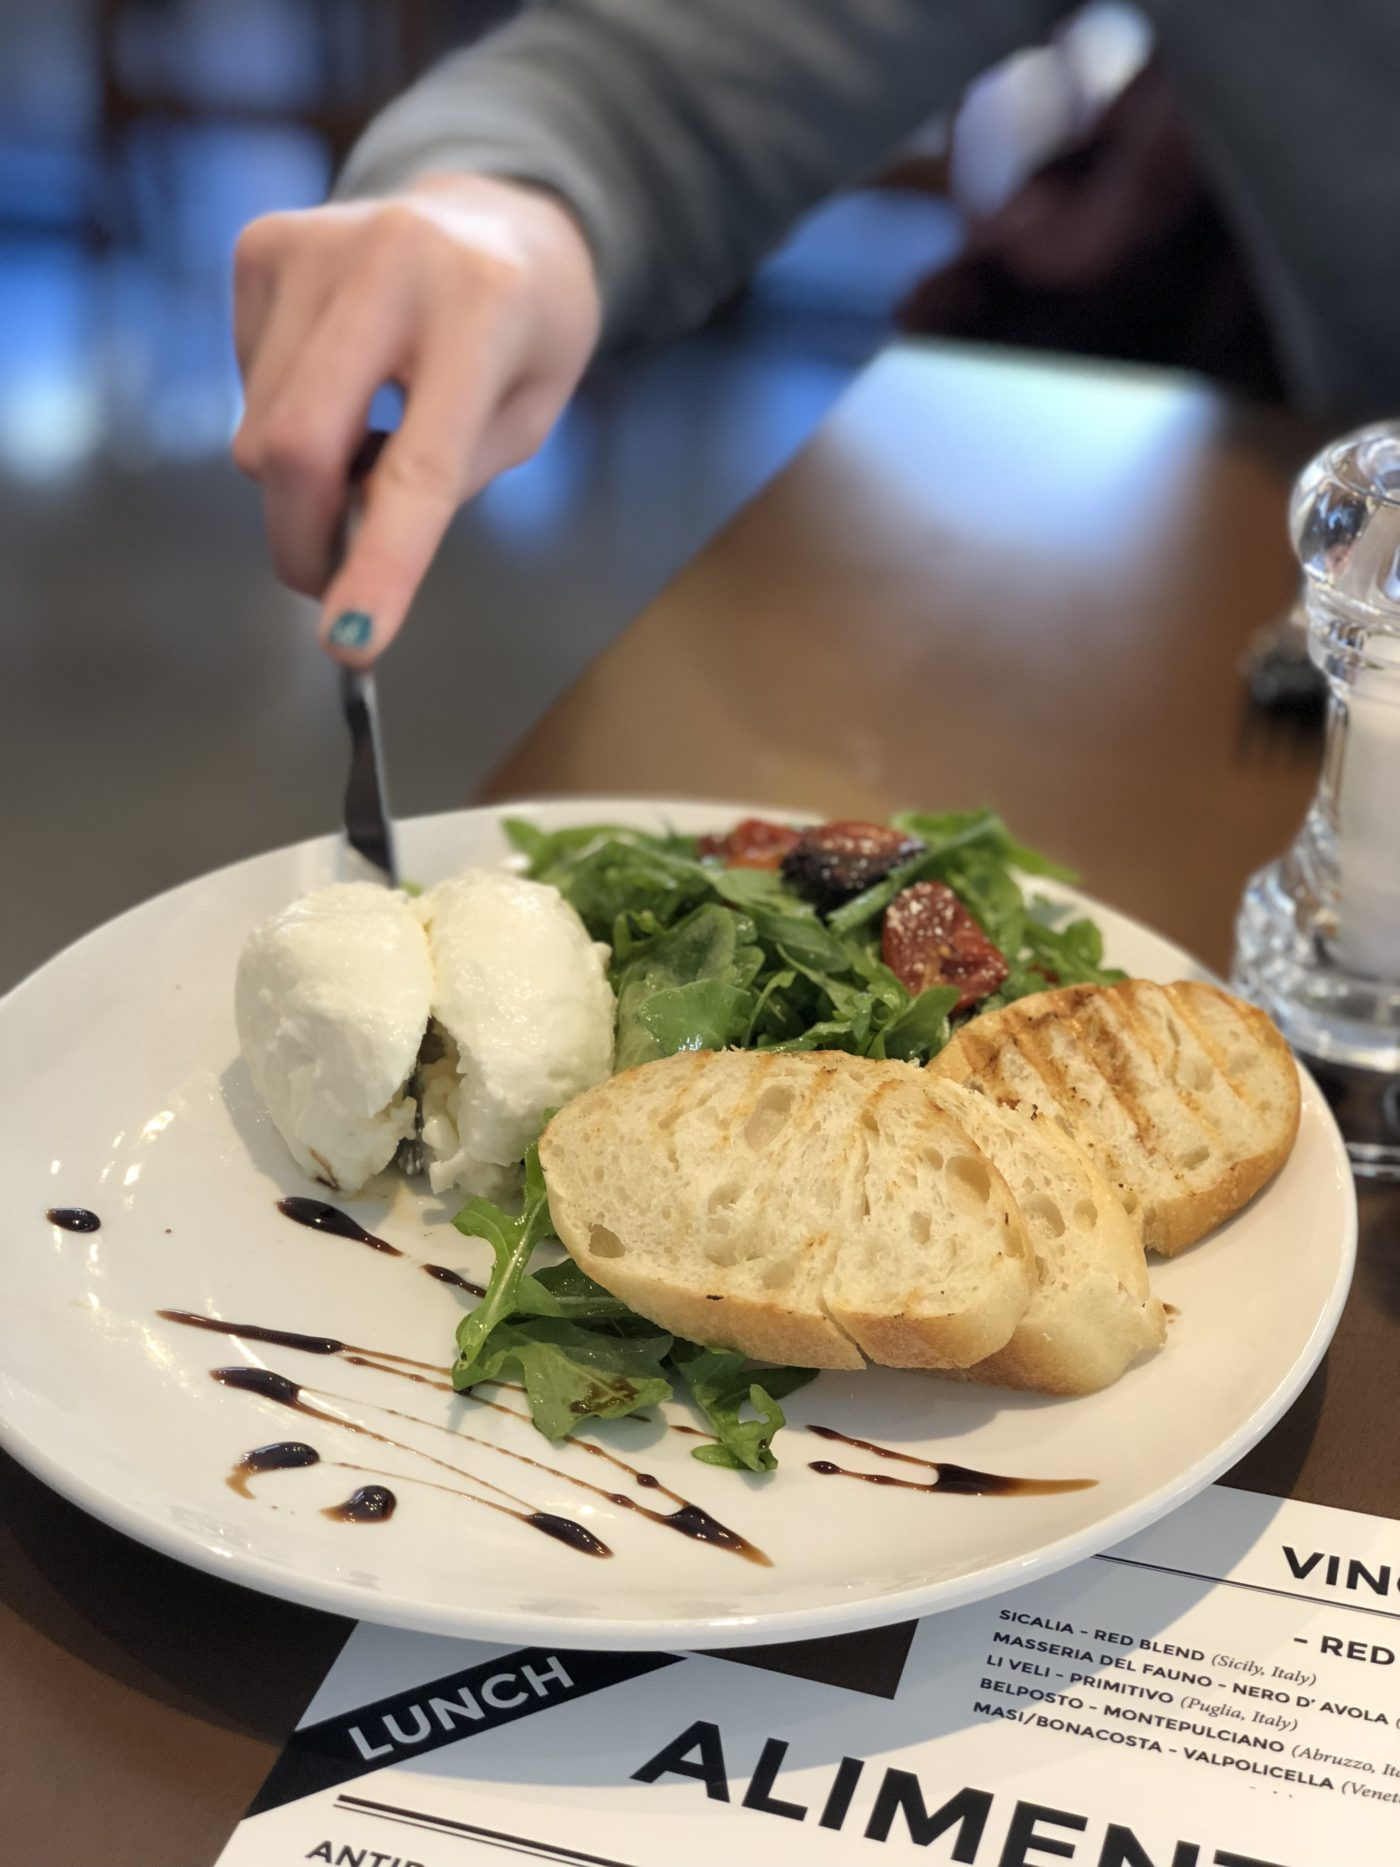 knife cutting into fresh burrata